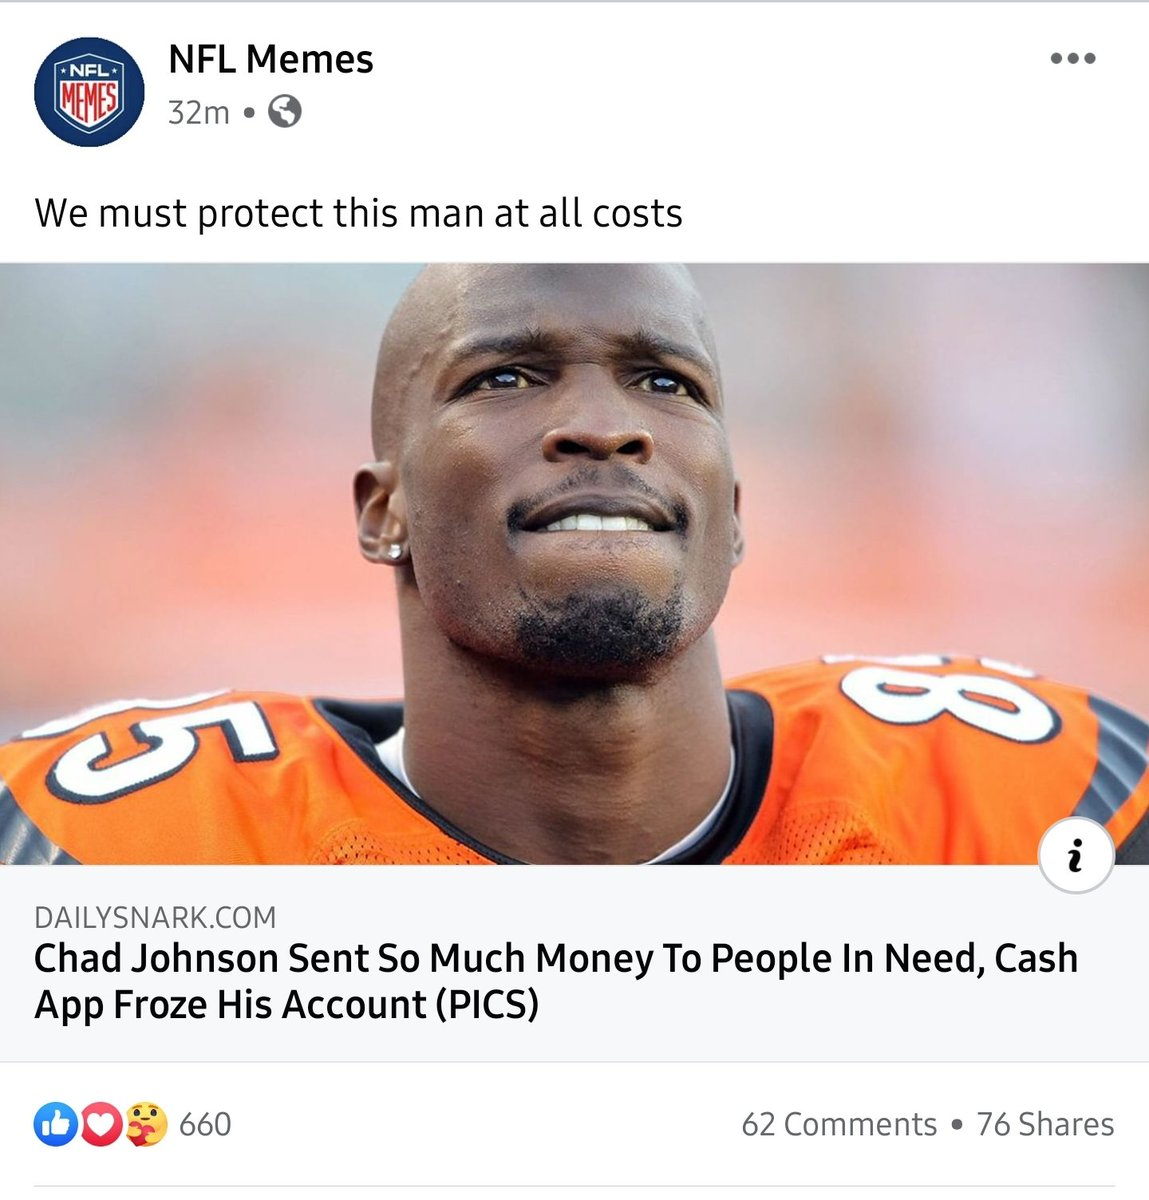 Ive followed @ochocinco for yearrrrssss. Ive always thought it was BS that he would send out money to people until i see this! This is a good dude here! Ill never doubt him again. https://t.co/uv0Yly6TLq